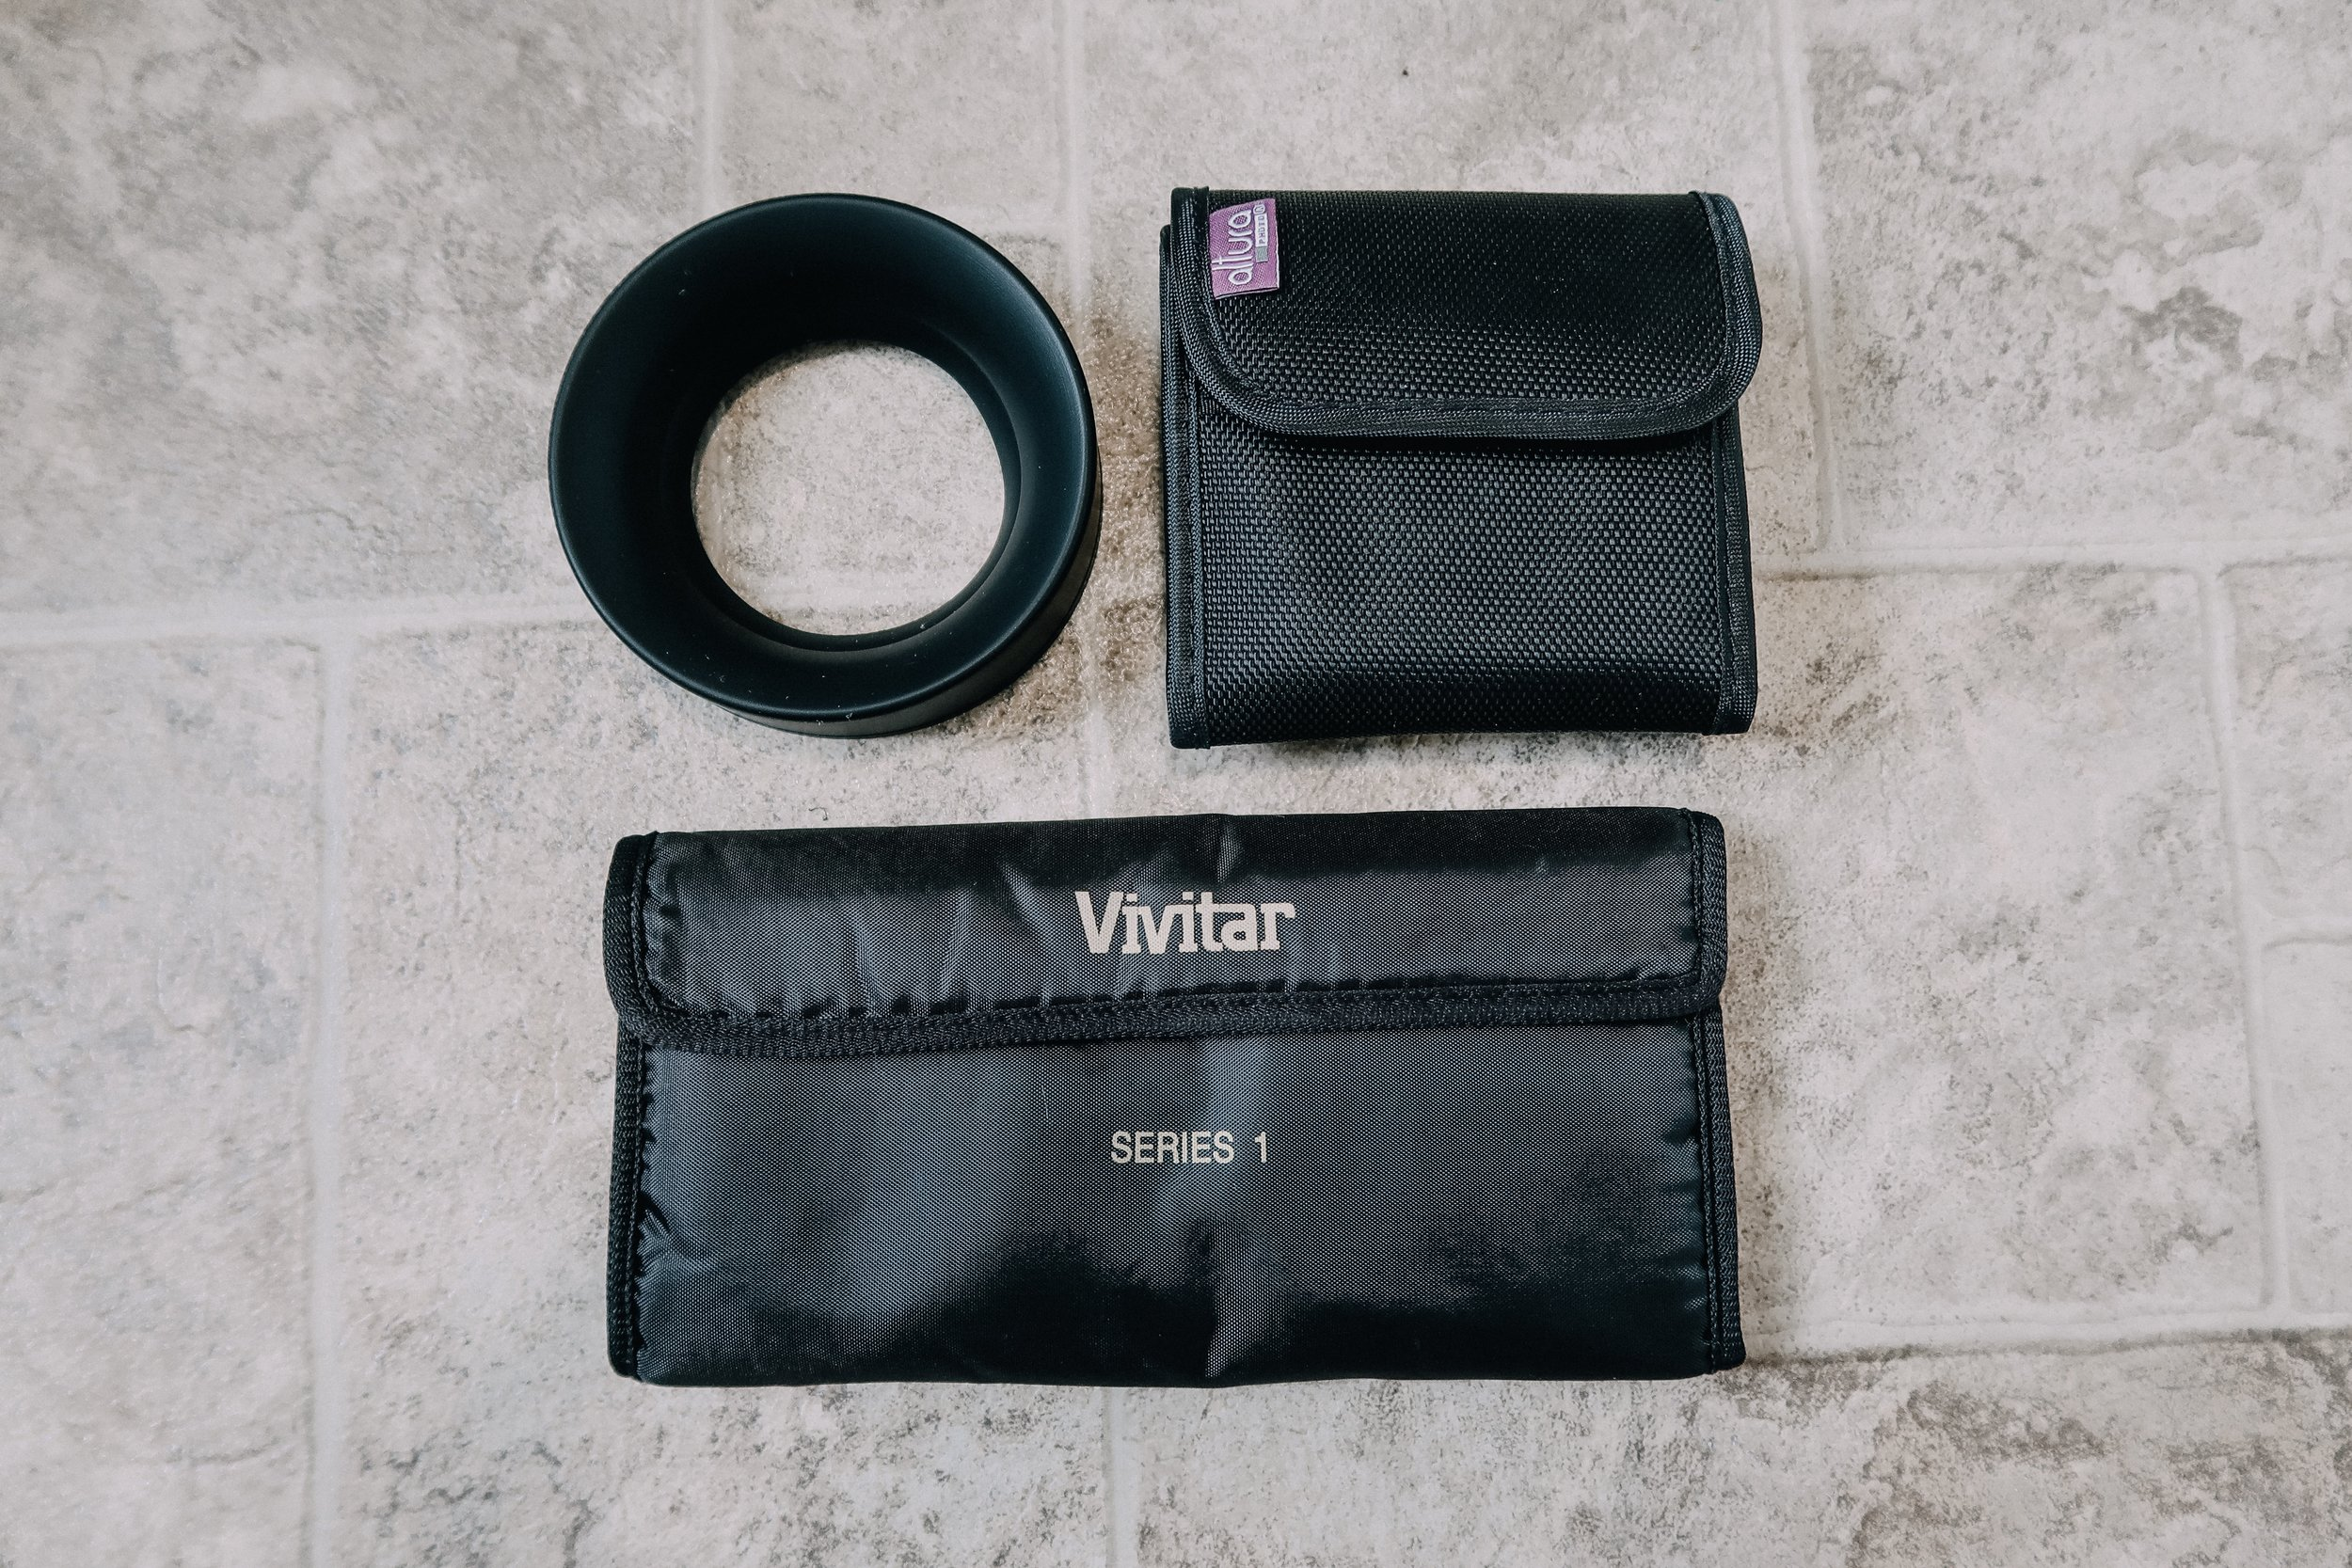 Altura ND Filter set, Vivitar Filter set, collapsable rubber lens hood